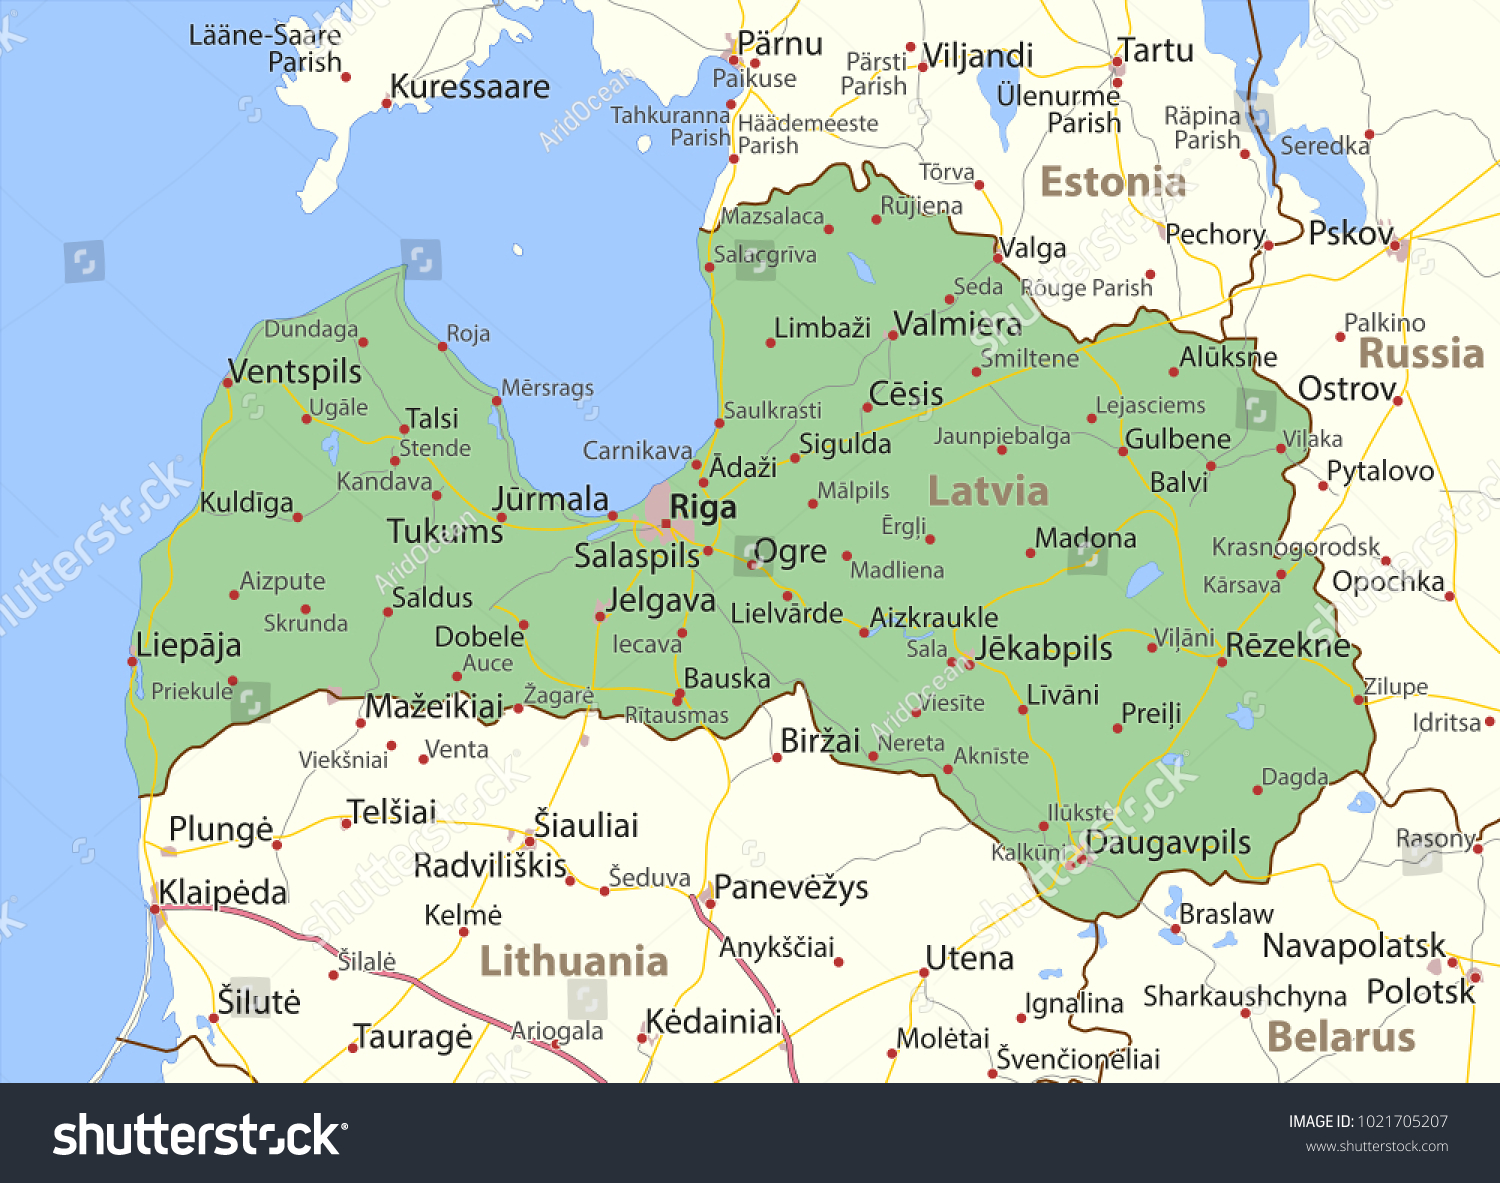 Where Is Latvia On The World Map.Map Latvia Shows Country Borders Urban Stock Vector Royalty Free